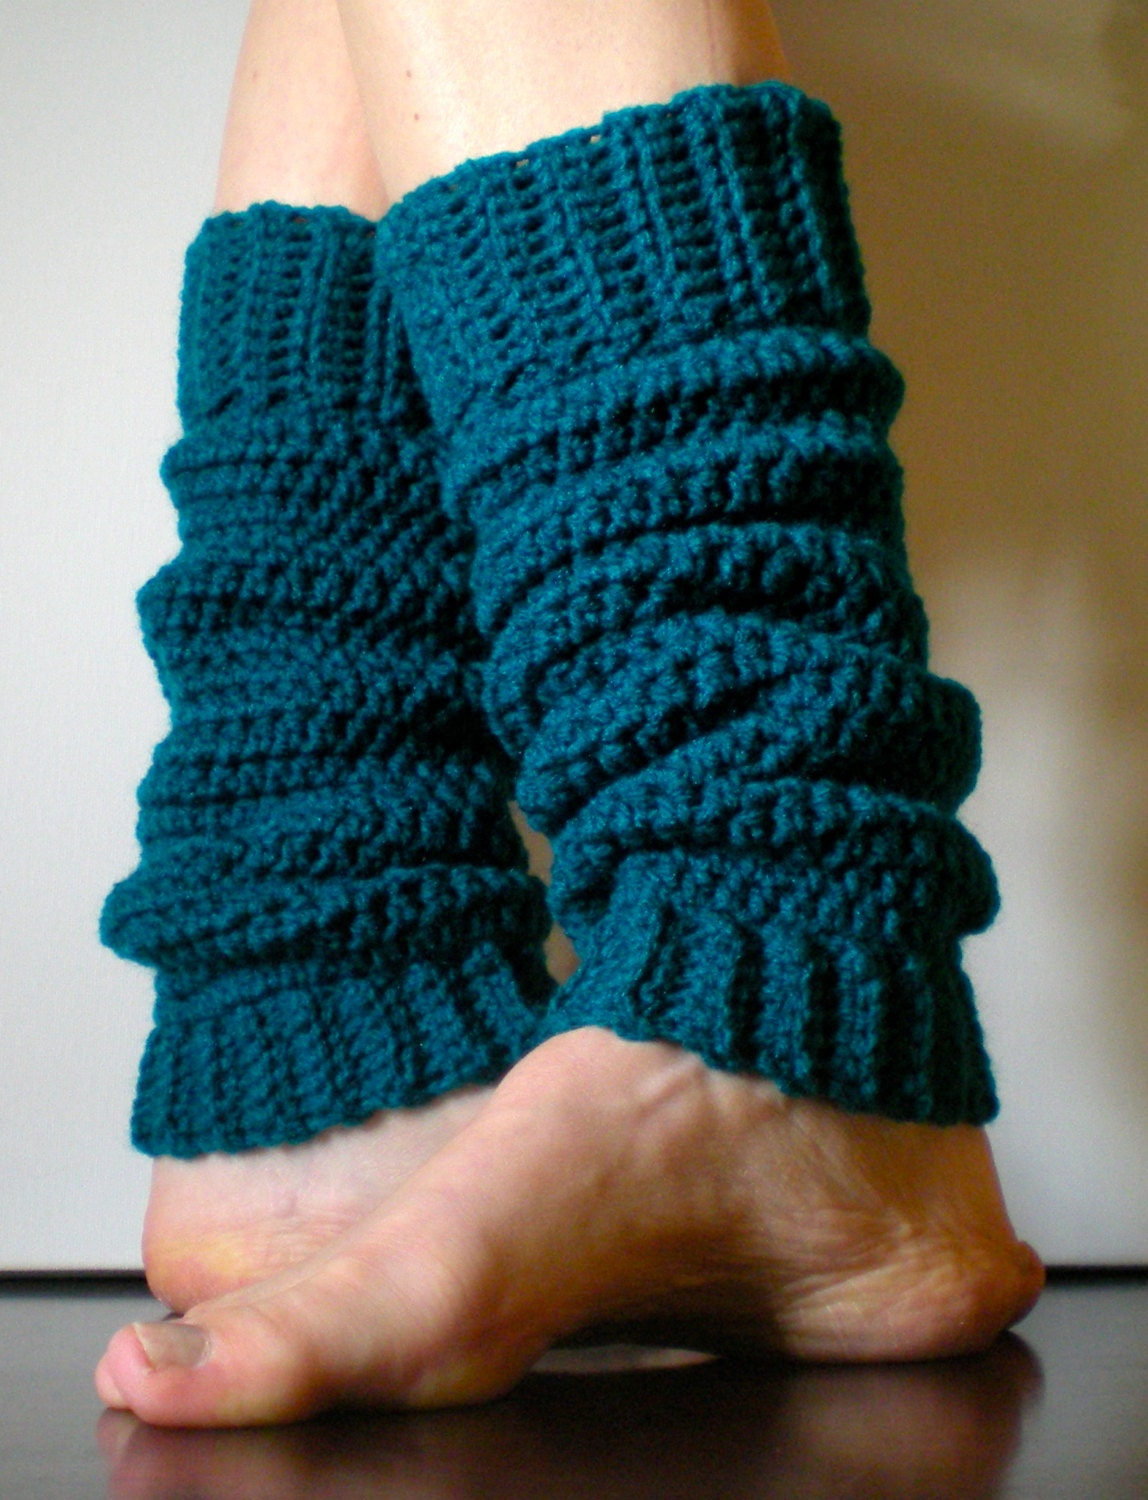 Knitting Patterns Leg Warmers Ballet : PATTERN: Classic Warmers Easy Crochet PDF InStAnT DowNLoaD